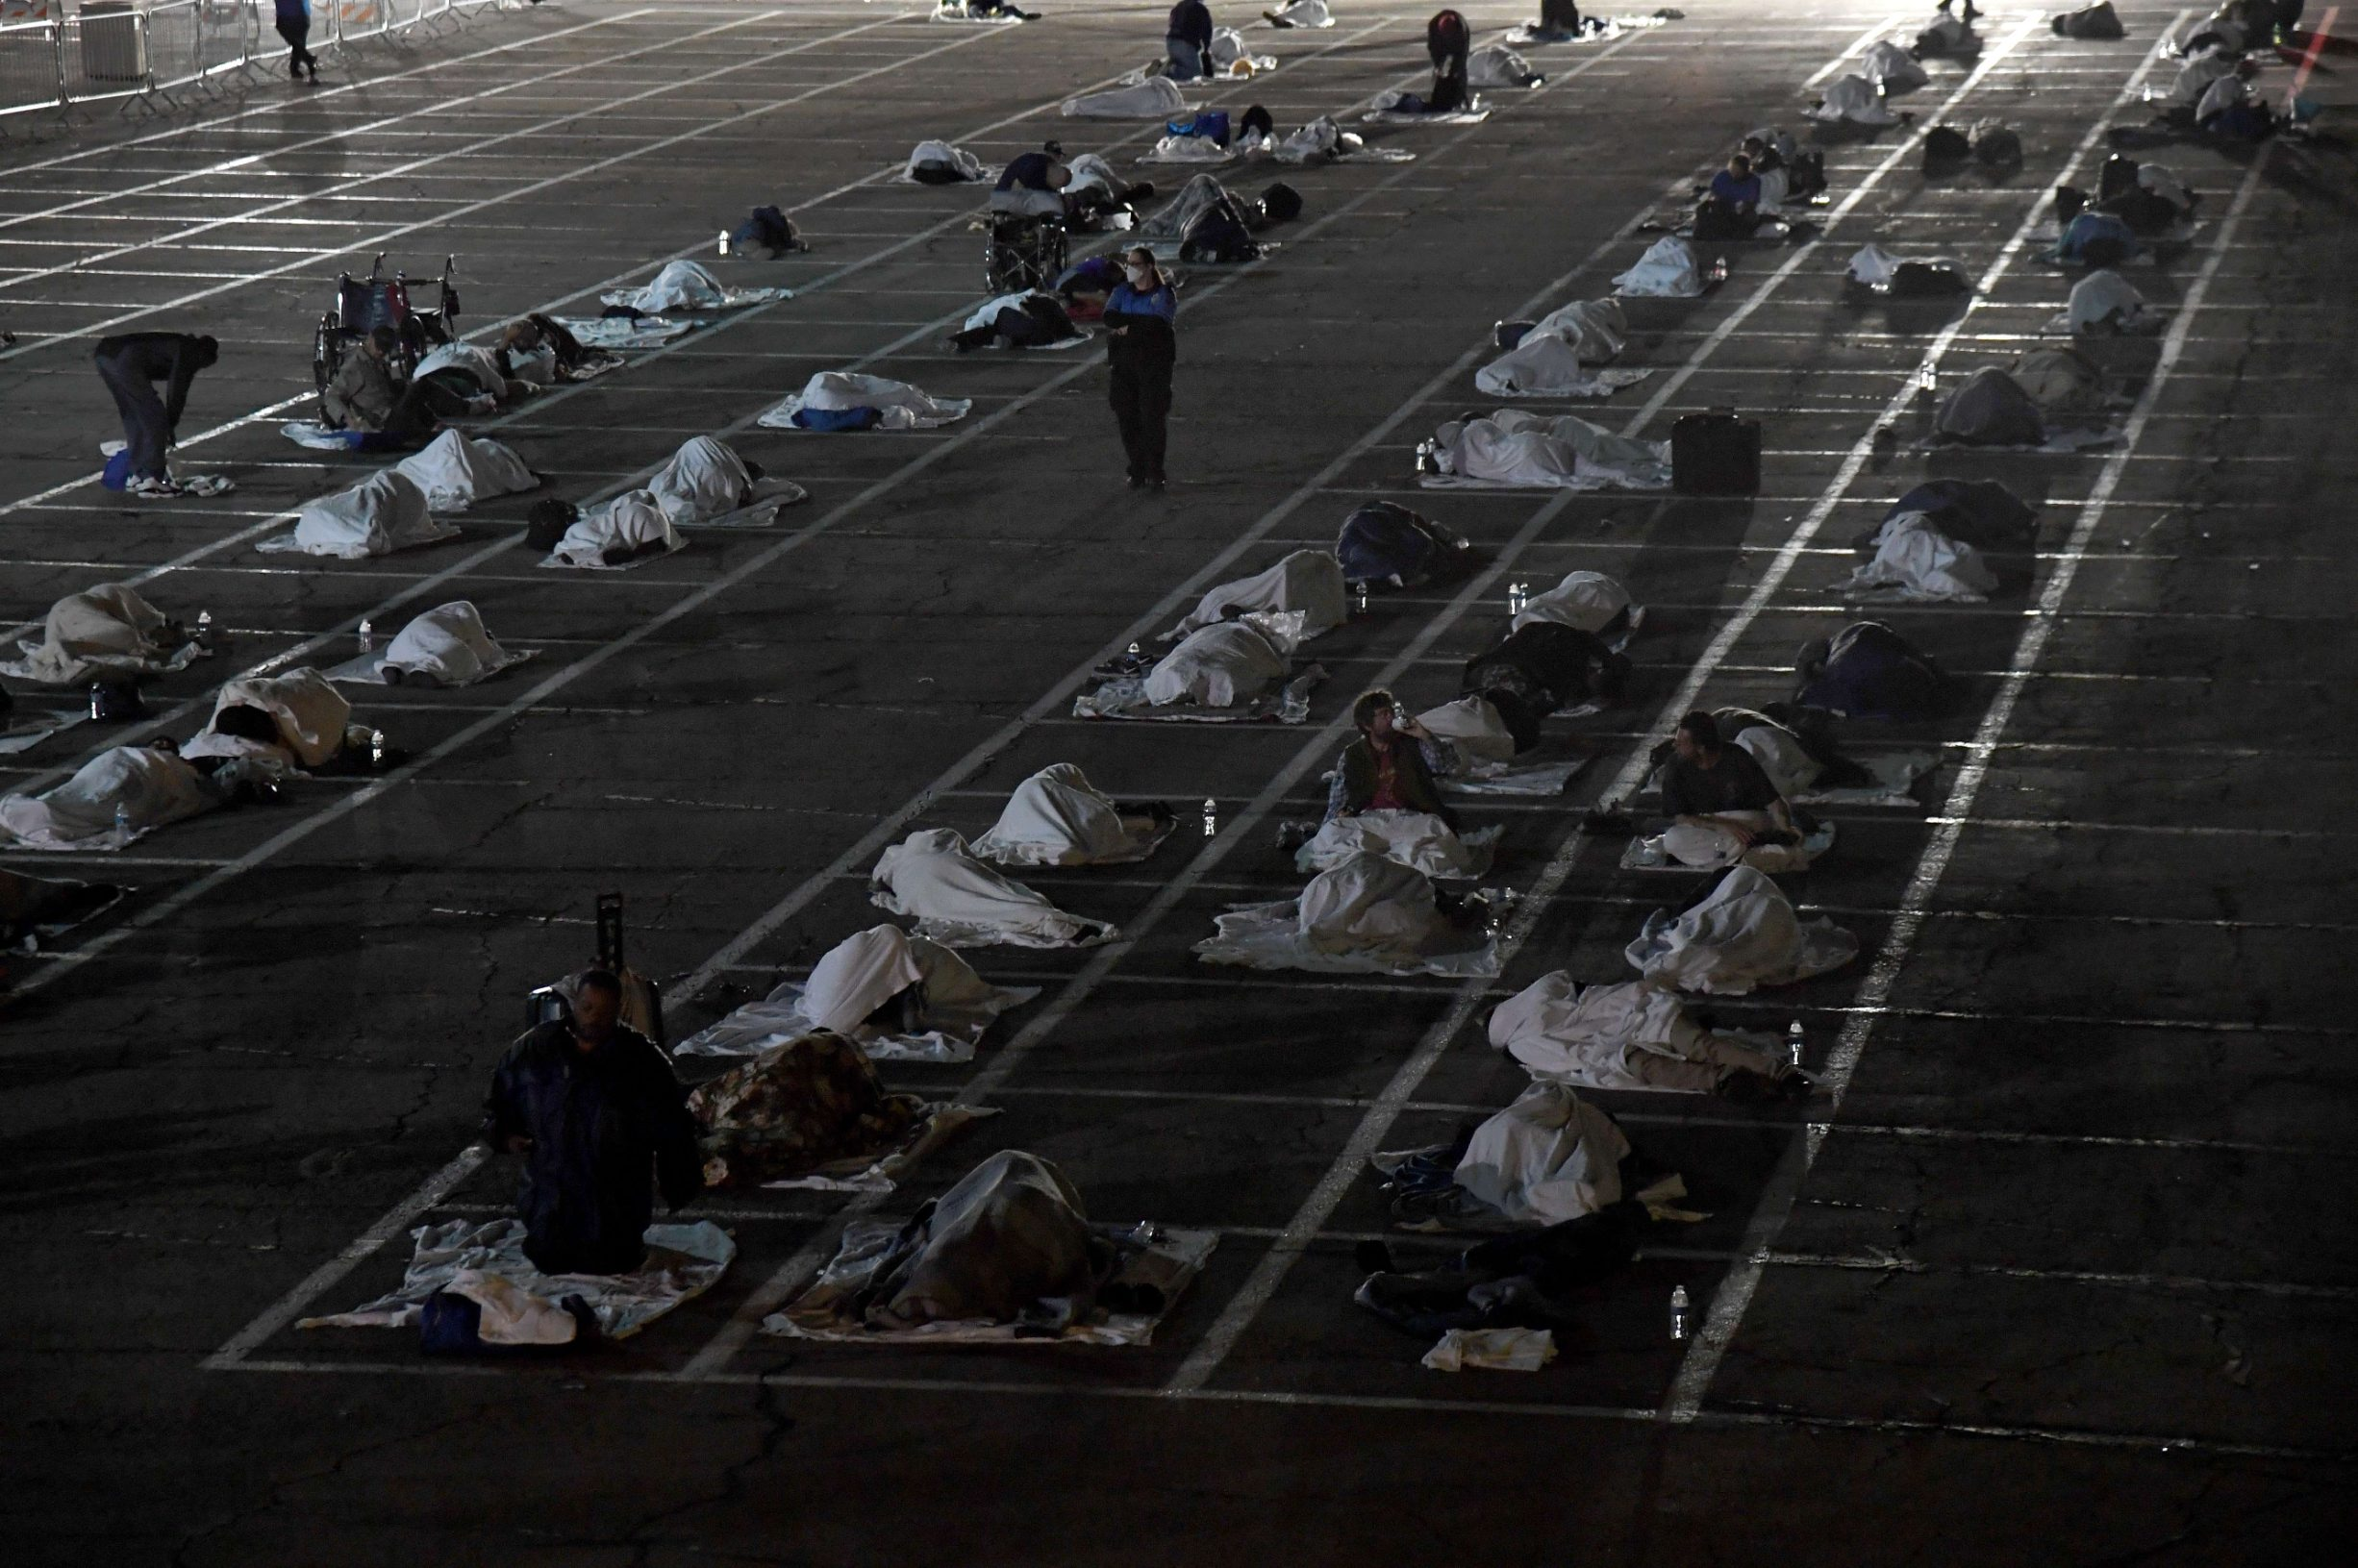 LAS VEGAS, NEVADA - MARCH 30: People sleep in social-distancing boxes at a temporary homeless shelter set up in a parking lot at Cashman Center on March 30, 2020 in Las Vegas, Nevada. Catholic Charities of Southern Nevada was closed last week after a homeless man who used their services tested positive for the coronavirus, leaving about 500 people with no overnight shelter. The city of Las Vegas, Clark County and local homeless providers plan to operate the shelter through April 3rd when it is anticipated that the Catholic Charities facility will be back open. The city is also reserving the building spaces at Cashman Center in case of an overflow of hospital patients. The World Health Organization declared the coronavirus (COVID-19) a global pandemic on March 11th.   Ethan Miller/Getty Images/AFP == FOR NEWSPAPERS, INTERNET, TELCOS & TELEVISION USE ONLY ==